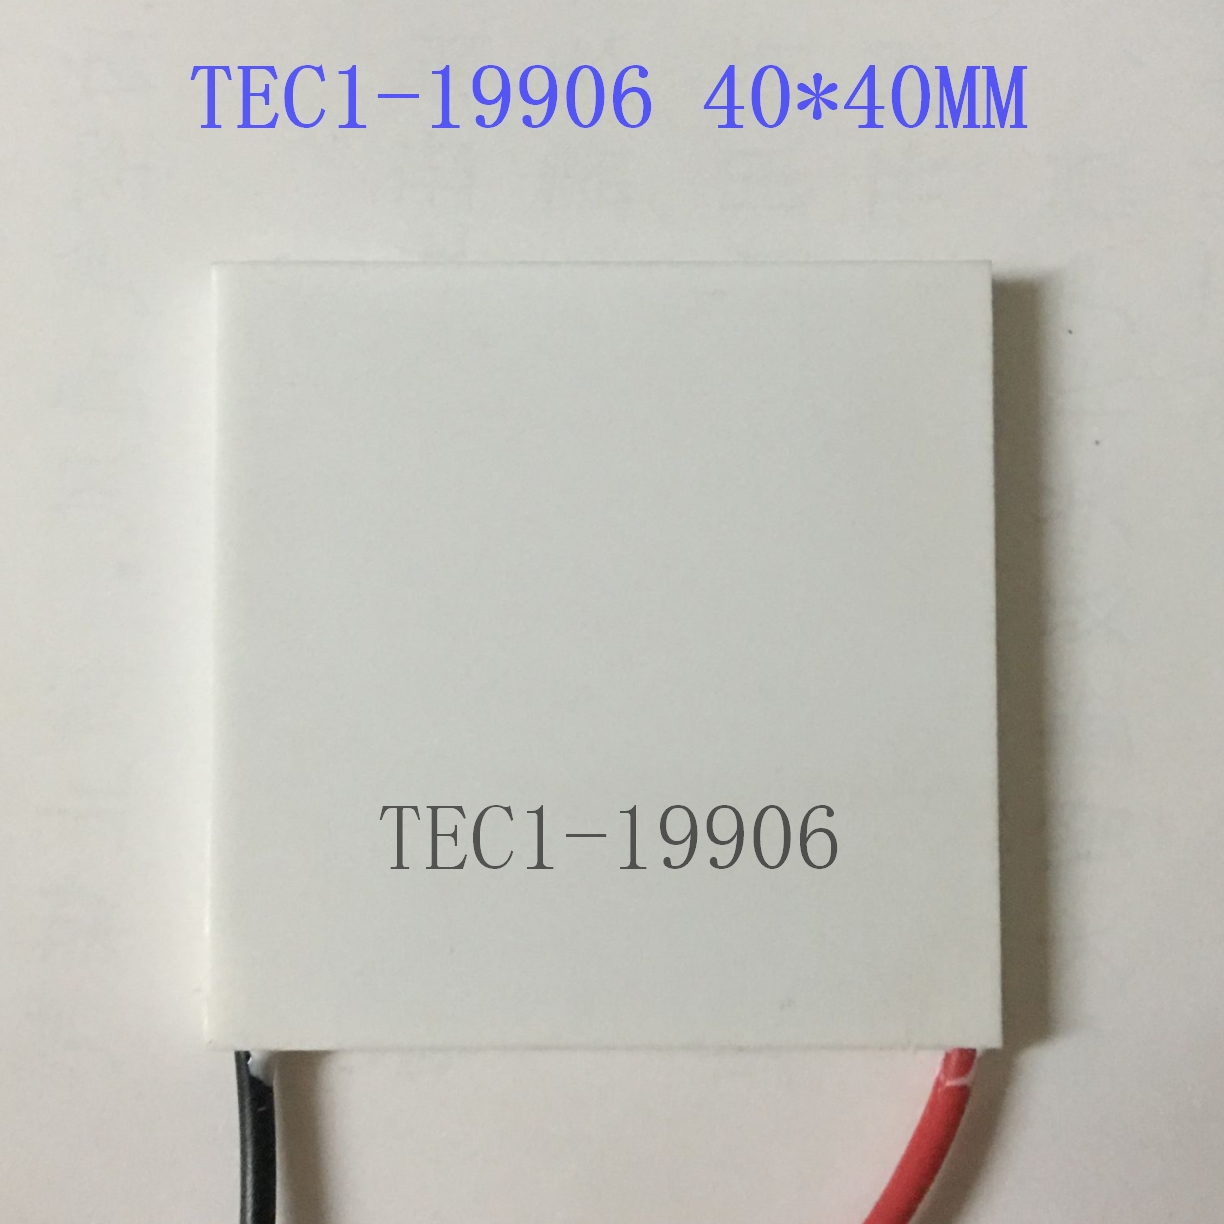 Semiconductor Refrigeration Chip, TEC1-19906, 40*40mm, 24V, 6A, High Power Refrigeration Device, Medical Refrigeration exclusive high power semiconductor refrigeration piece electronic refrigeration chip tec1 12730 360w